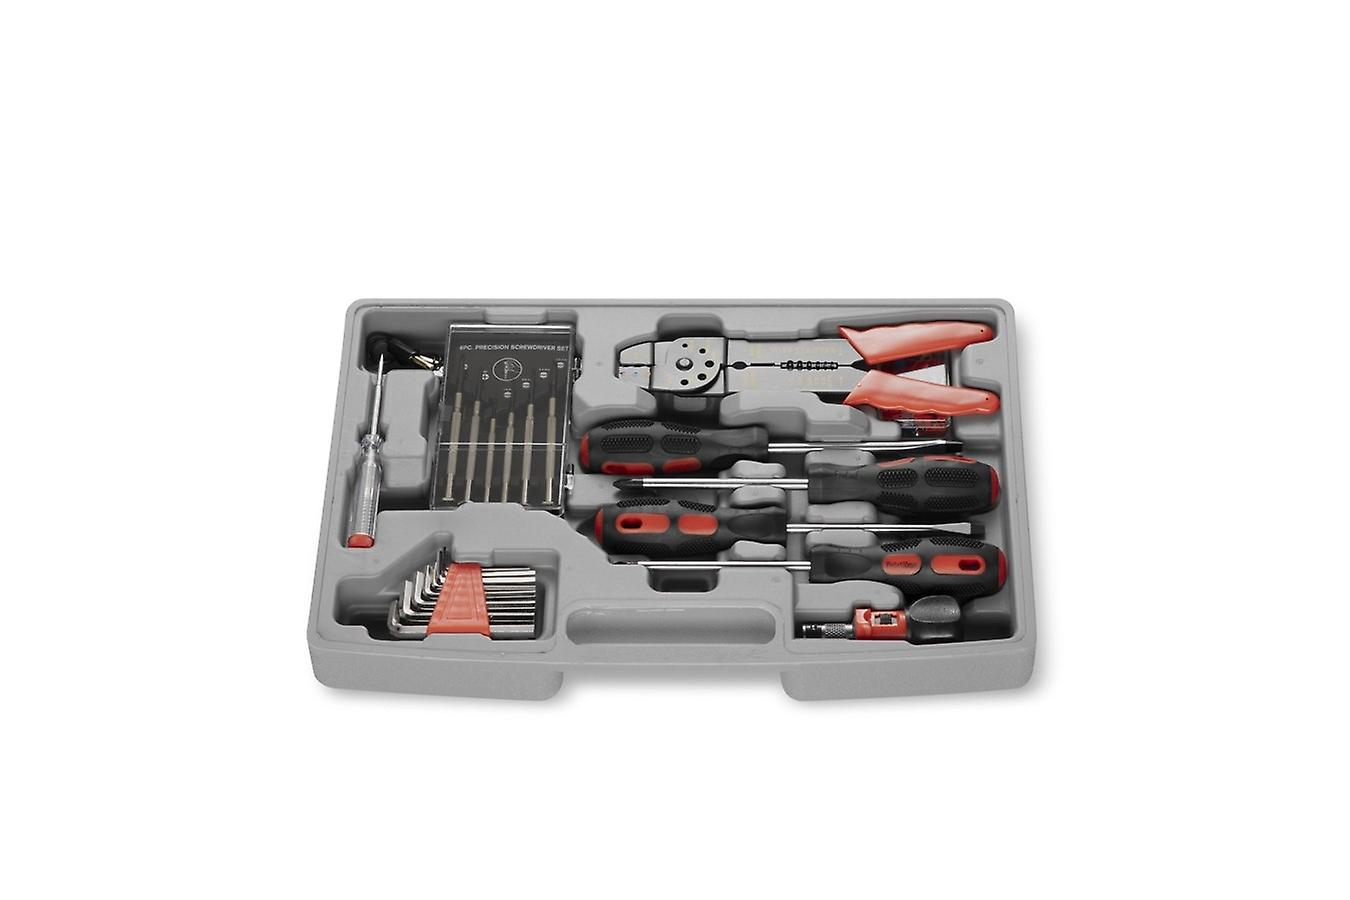 WOLFGANG Toolbox Professional with handle, large toolbox filled with wrench, socket set, pliers, screwdriver set, 105 parts, 4 drawers